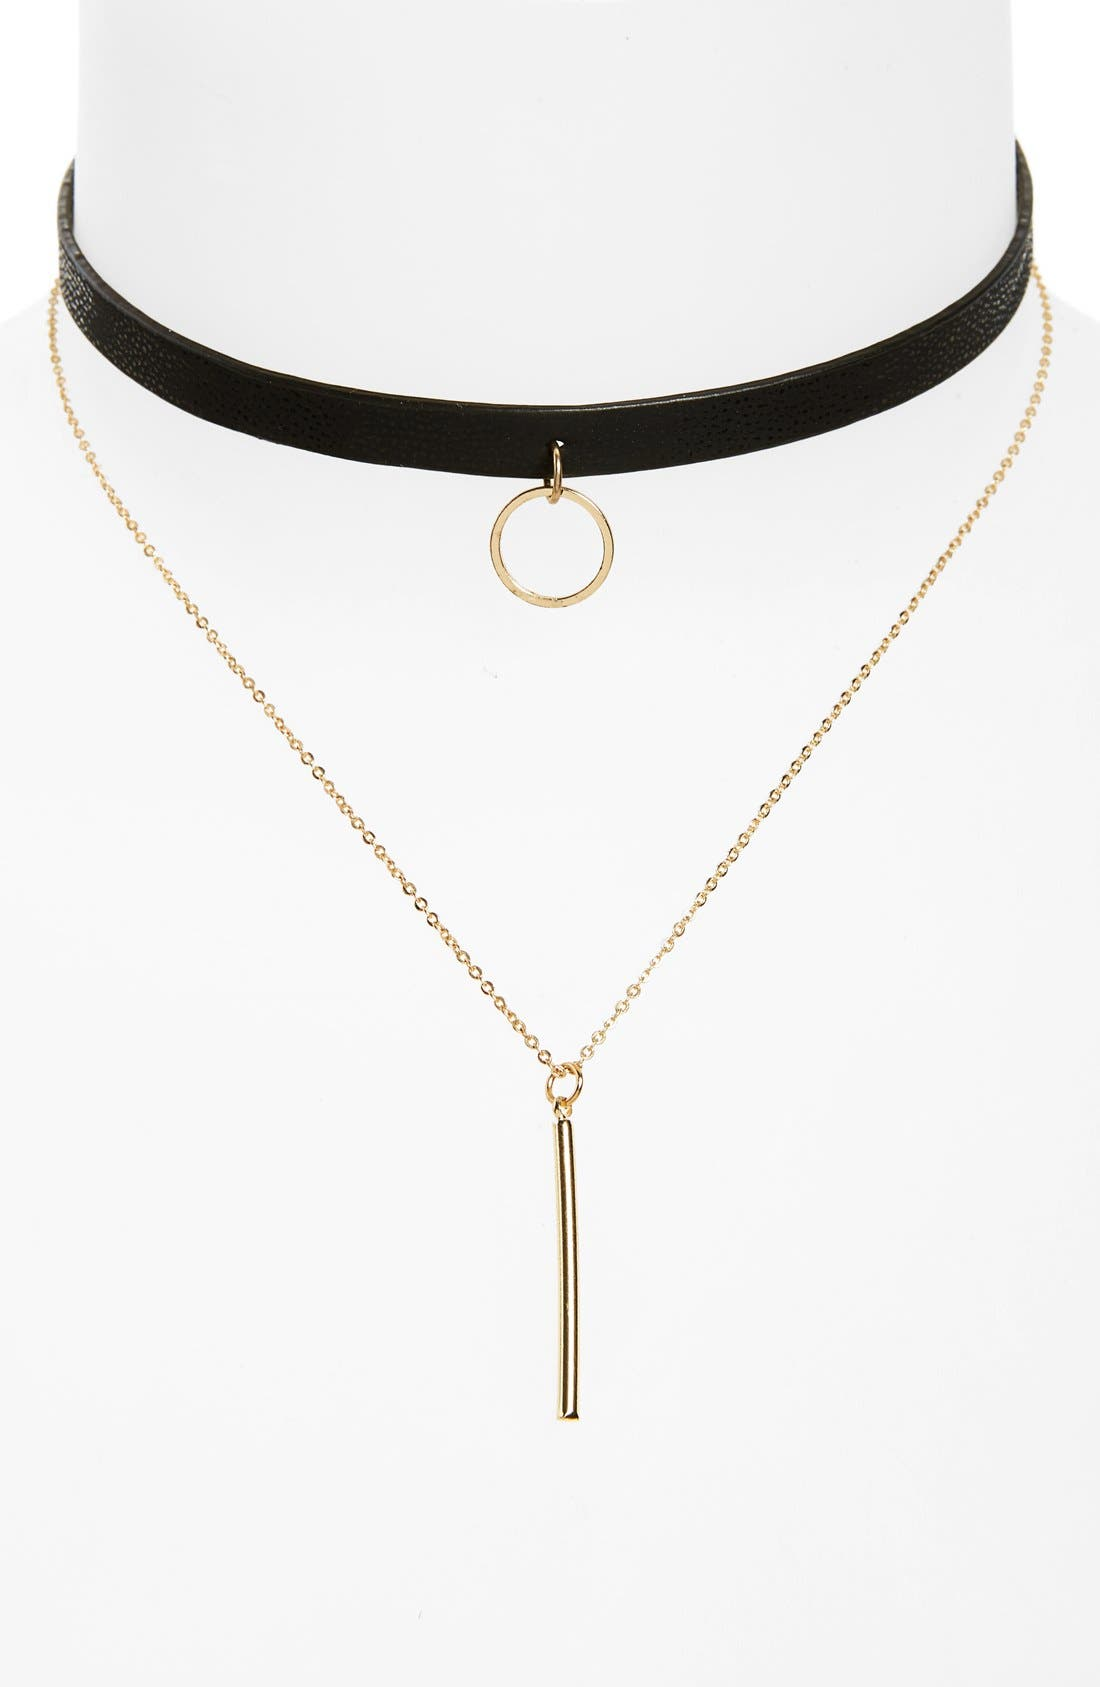 Alternate Image 1 Selected - Loren Olivia Faux Leather Choker Double Strand Bar Necklace